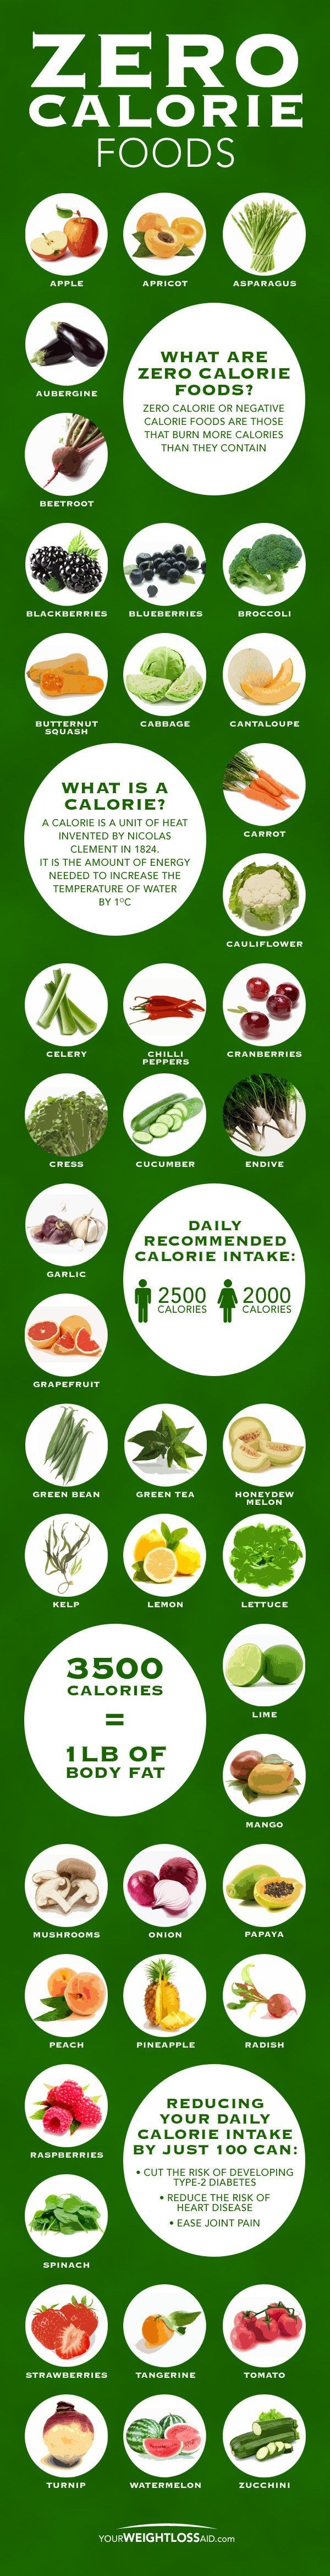 See more here ► https://www.youtube.com/watch?v=__Gi8cvdquw Tags: diet lose weight quickly, quick weight lose diet, quick ways to lose weight for men - Zero calorie foods are a great way to snack or to stop hunger! These are some of the ones you can eat on the 500 calorie diet.